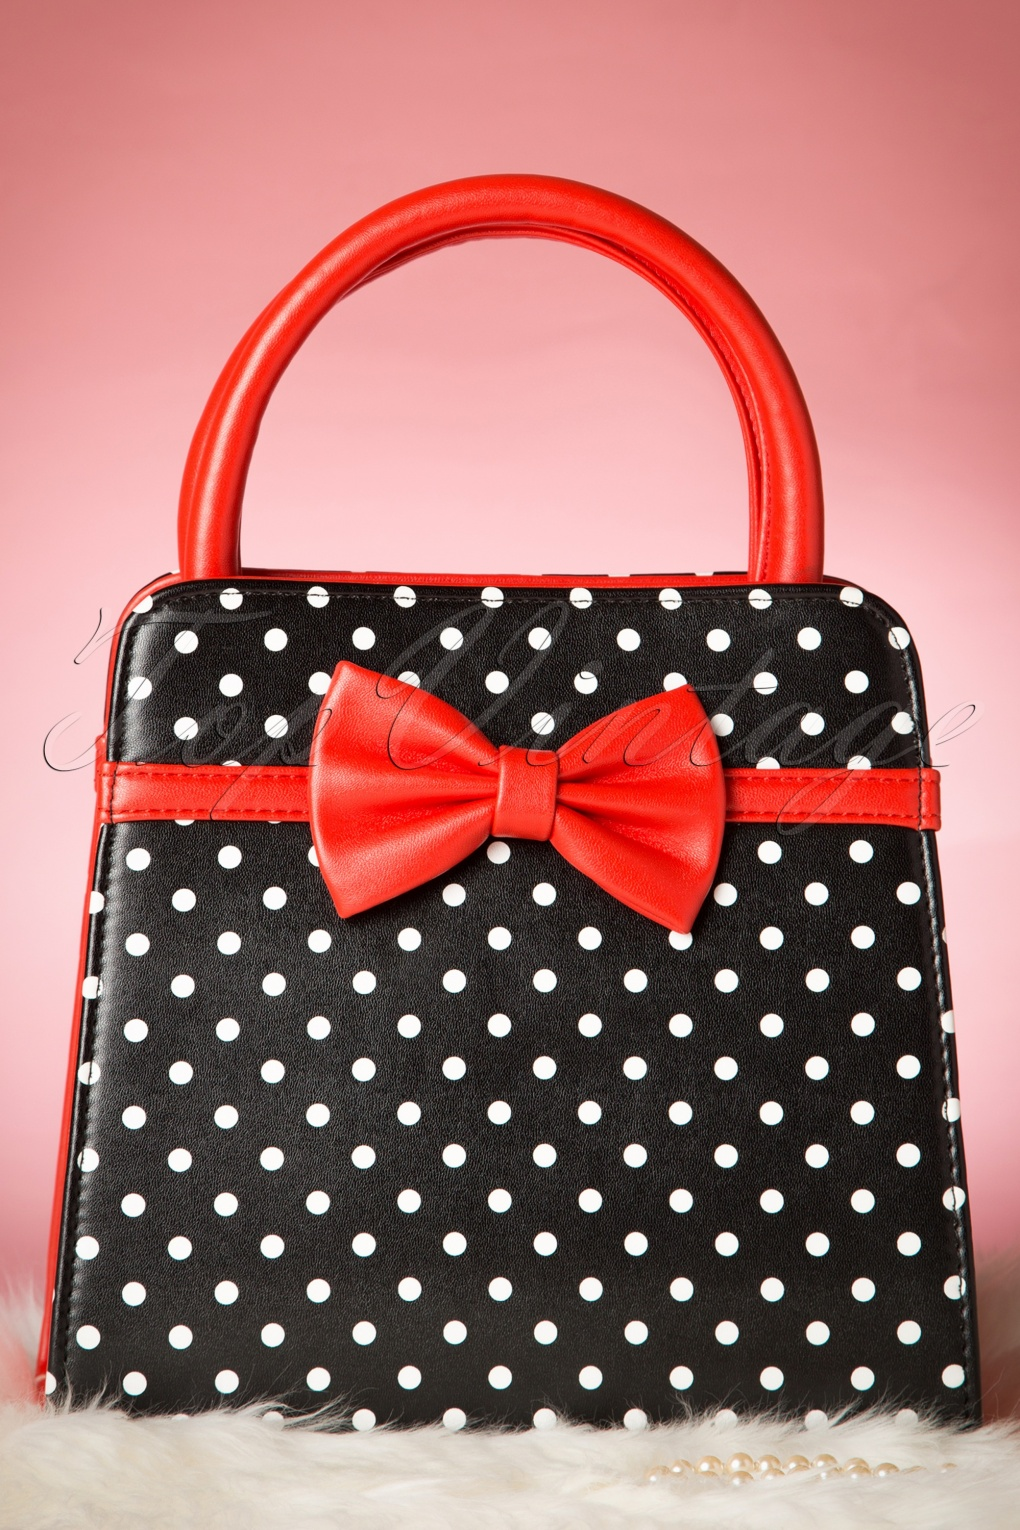 Retro Handbags, Purses, Wallets, Bags 50s Carla Polkadot Handbag in Black and Red £35.14 AT vintagedancer.com